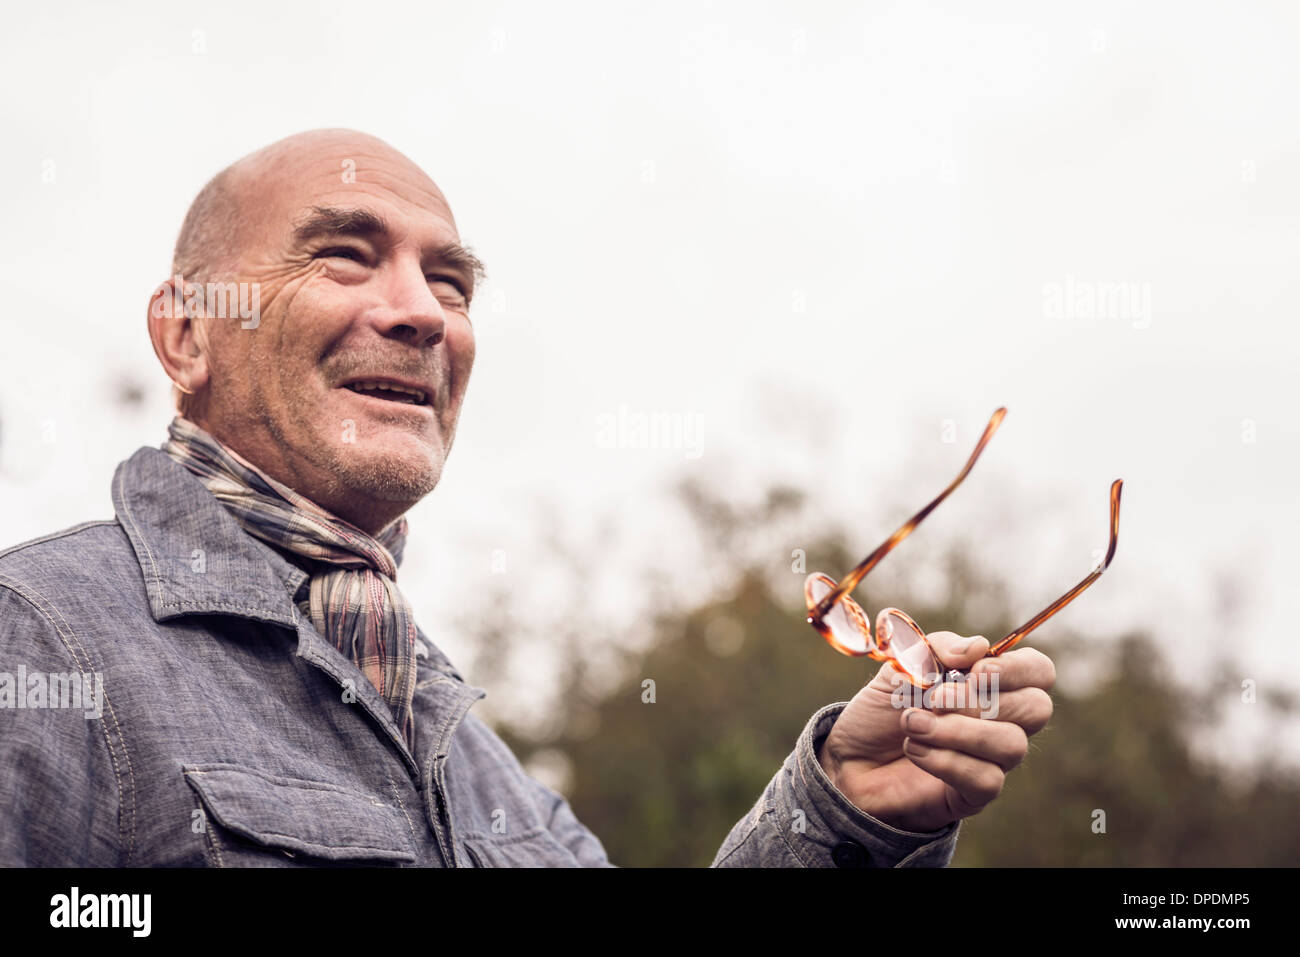 Senior man gesturing with spectacles - Stock Image